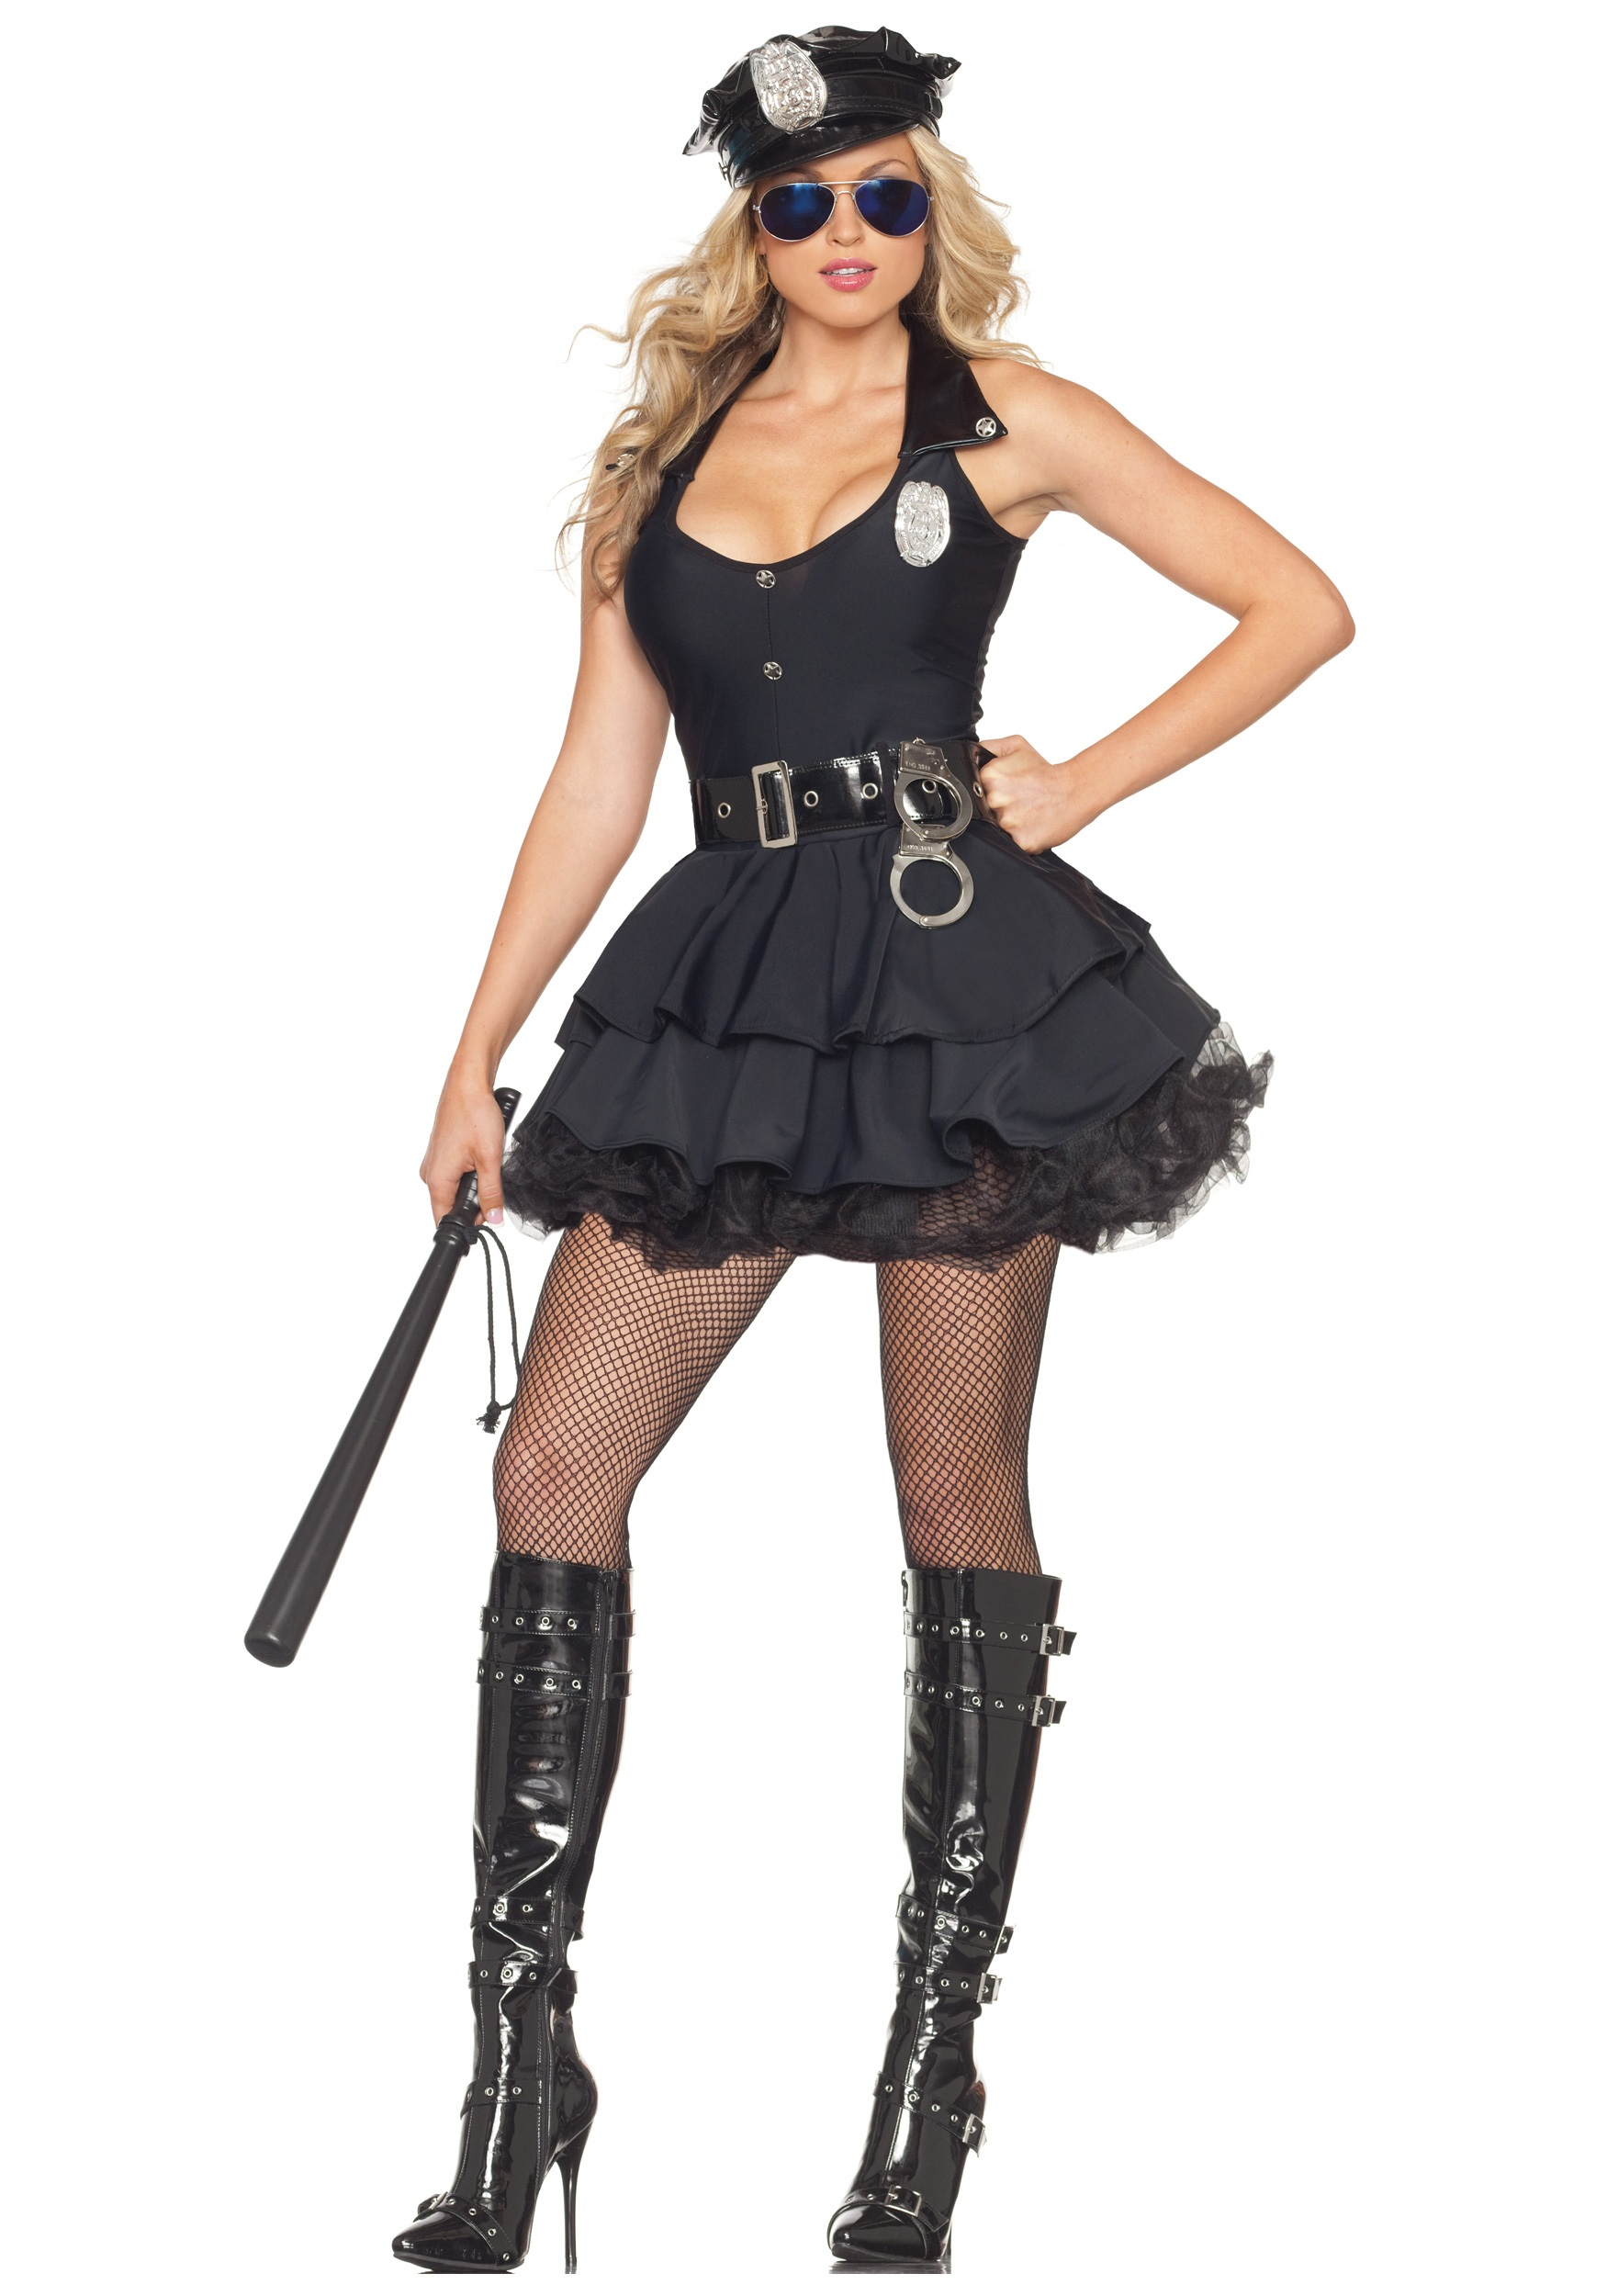 Sexy Police Costumes & Uniforms -